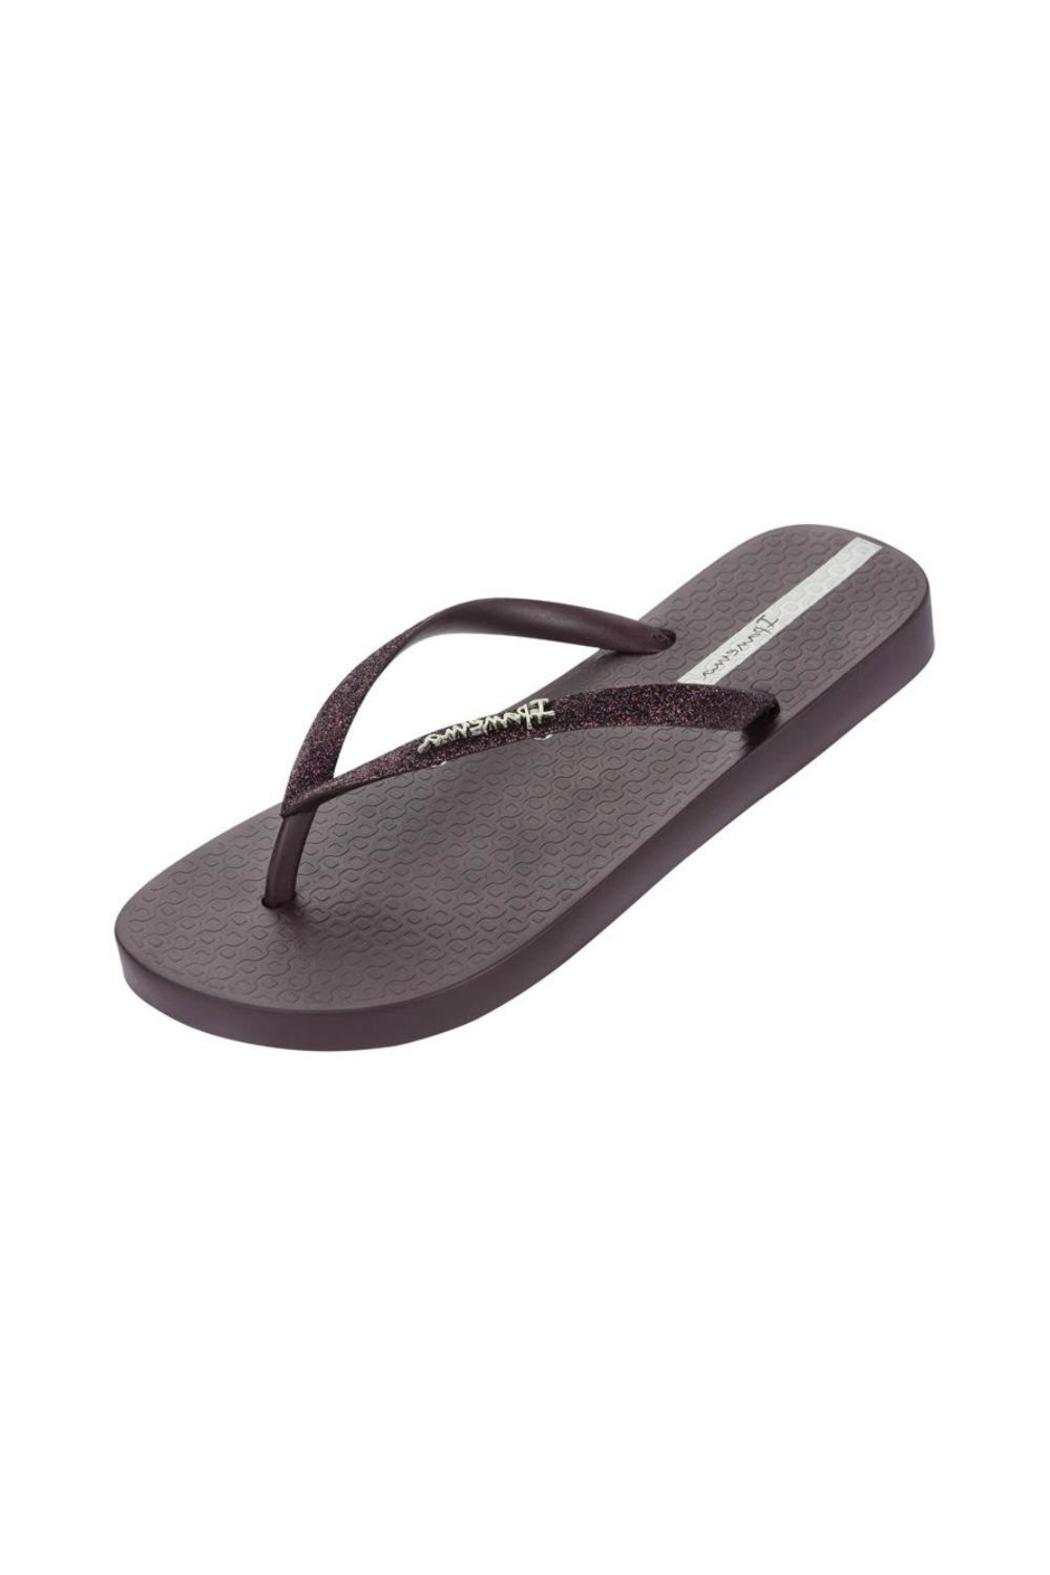 c293cbb1121898 Ipanema Glitter Flip Flop from St. George by The NOOK — Shoptiques